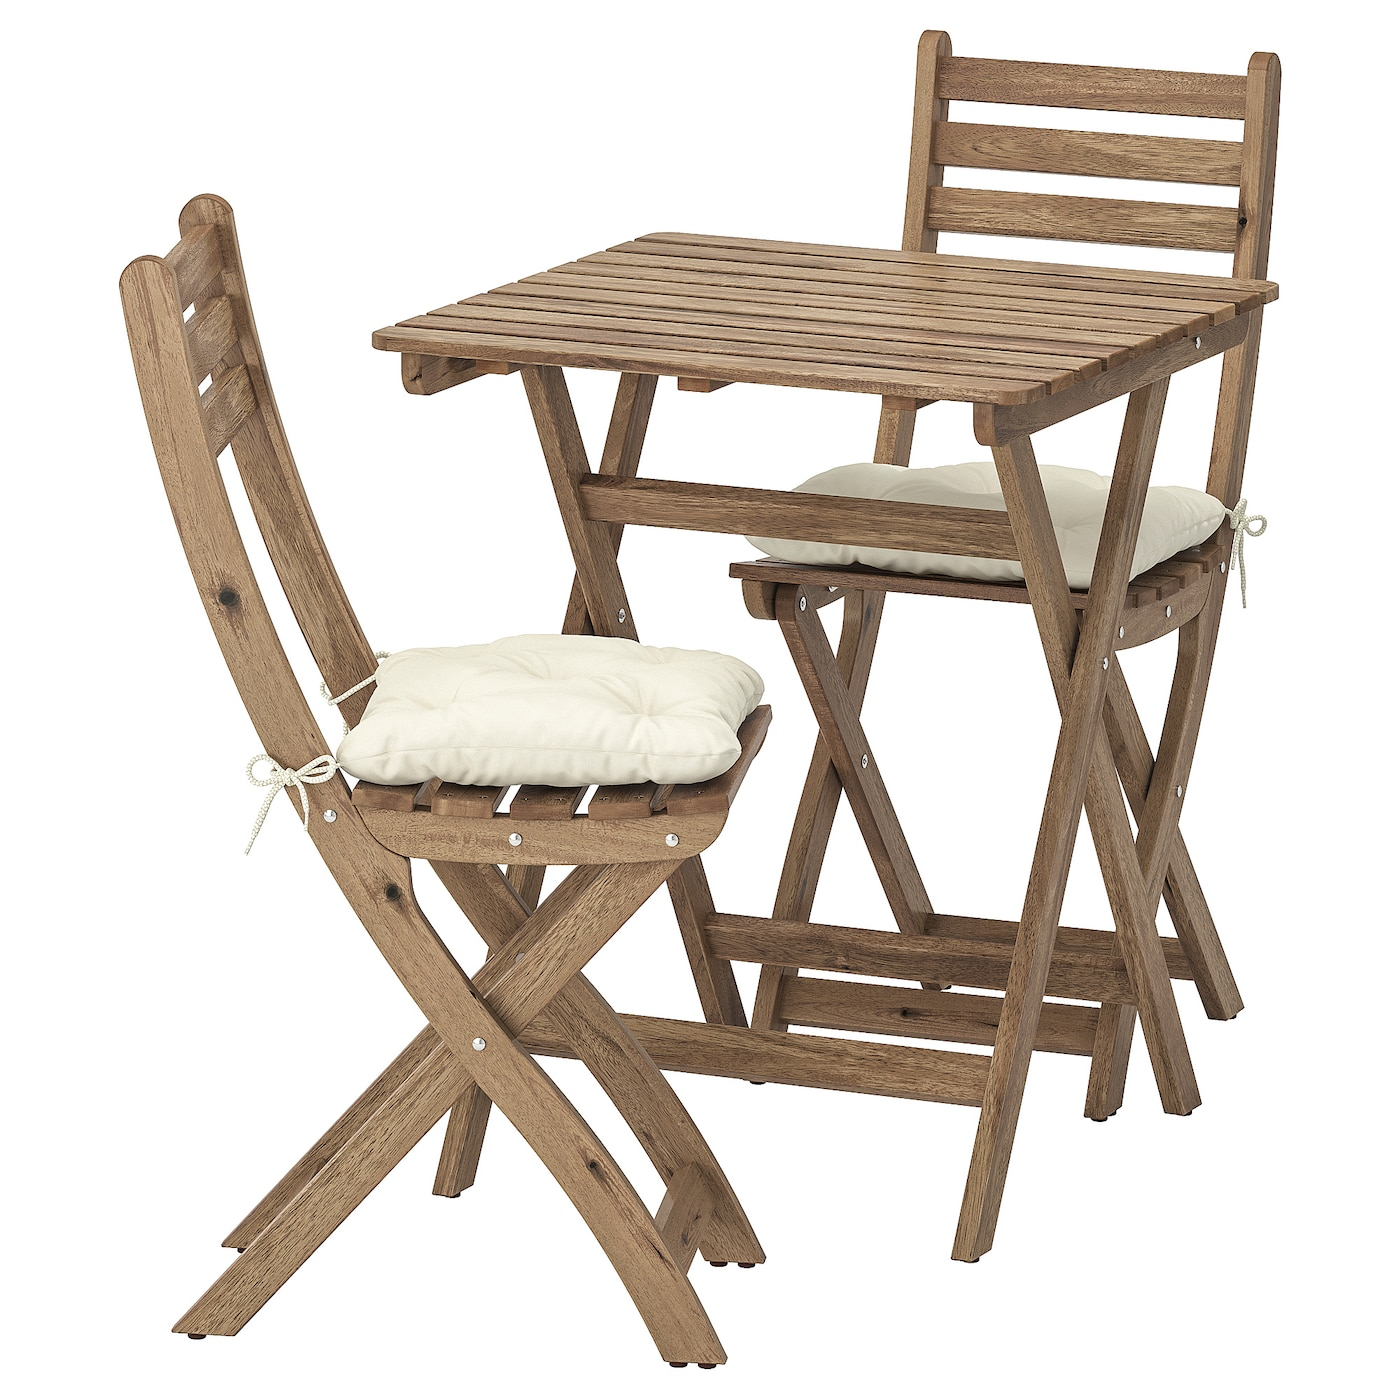 Table 2 Chairs Outdoor Askholmen Gray Brown Stained Kuddarna Beige